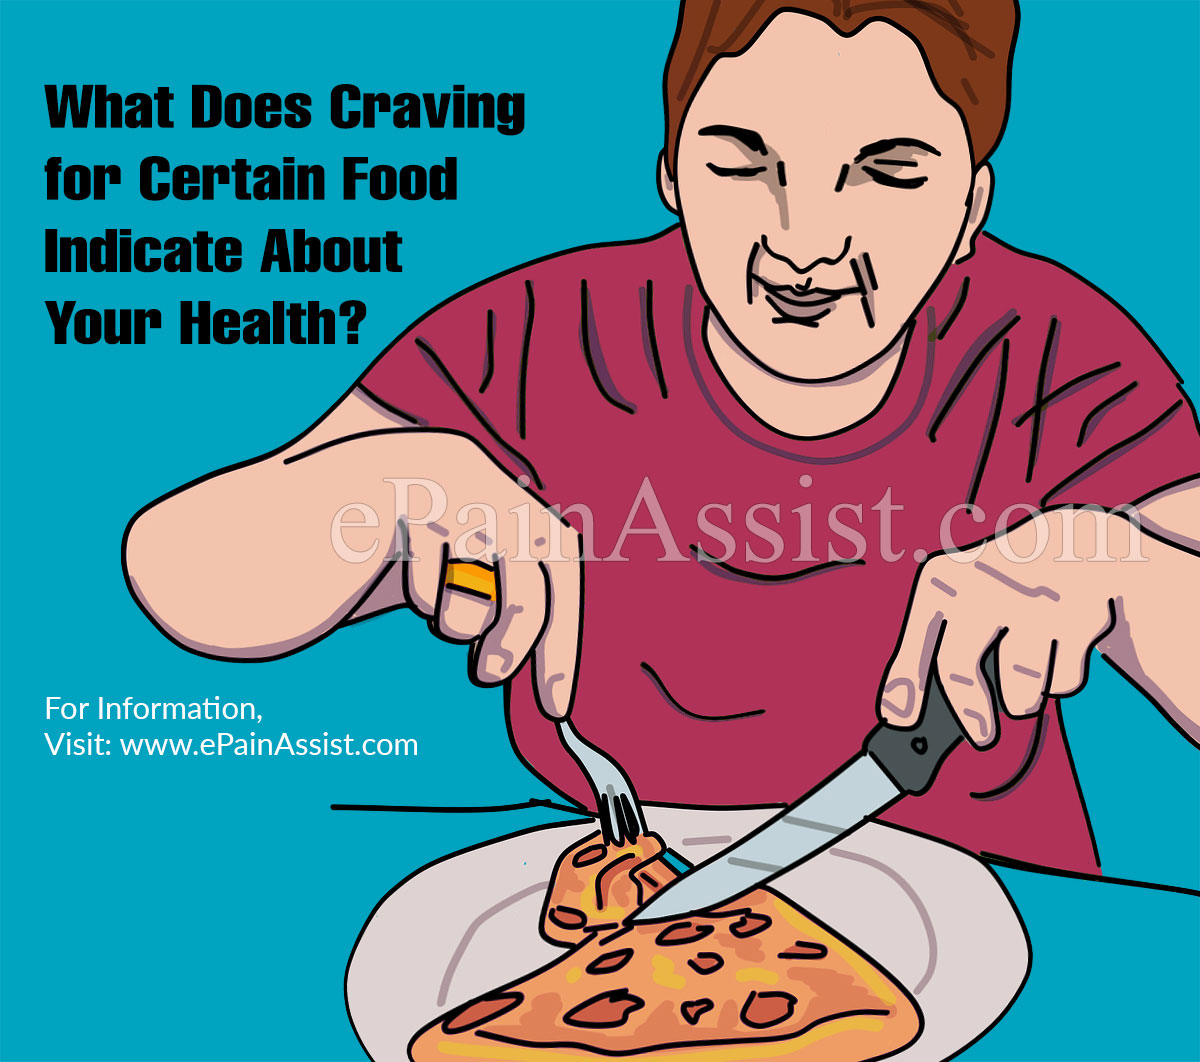 What Does Craving for Certain Food Indicate About Your Health?